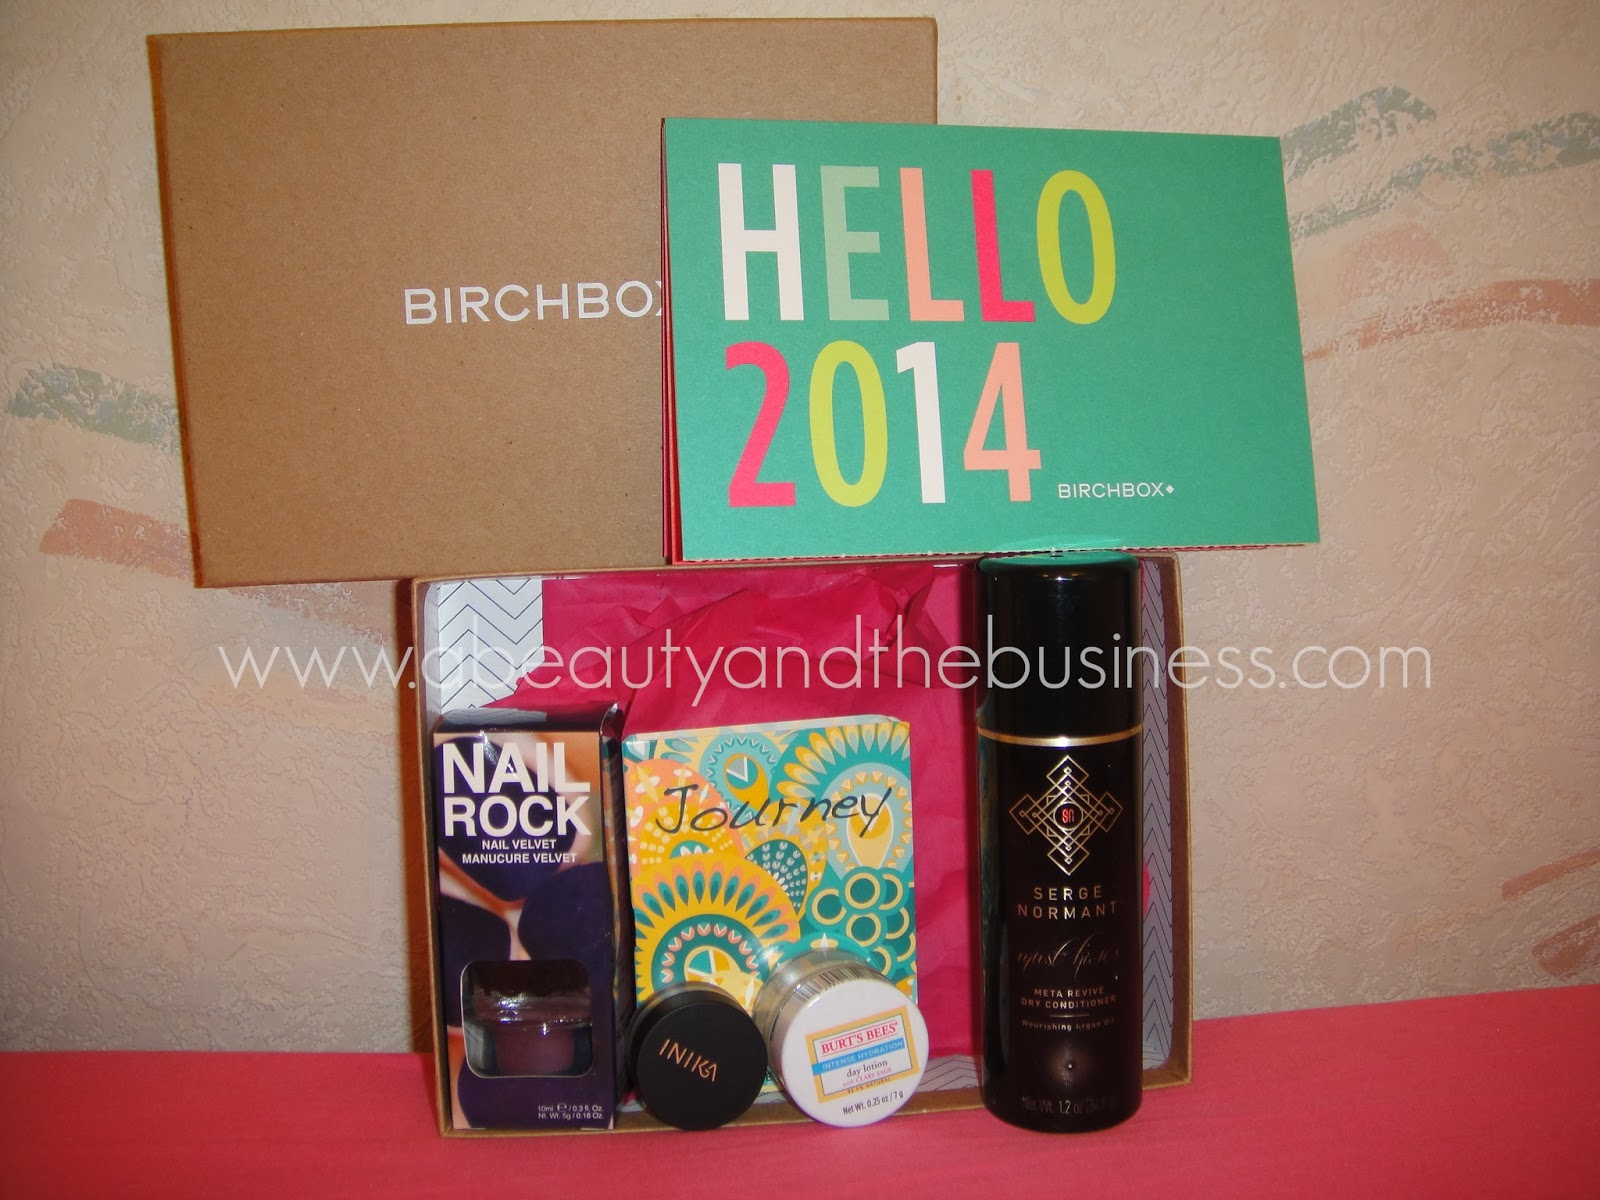 birchbox, birchbox 2014, birchbox January, birchbox January 2014, monthly subscription,monthly box,  birchbox go time, go time, 2014,